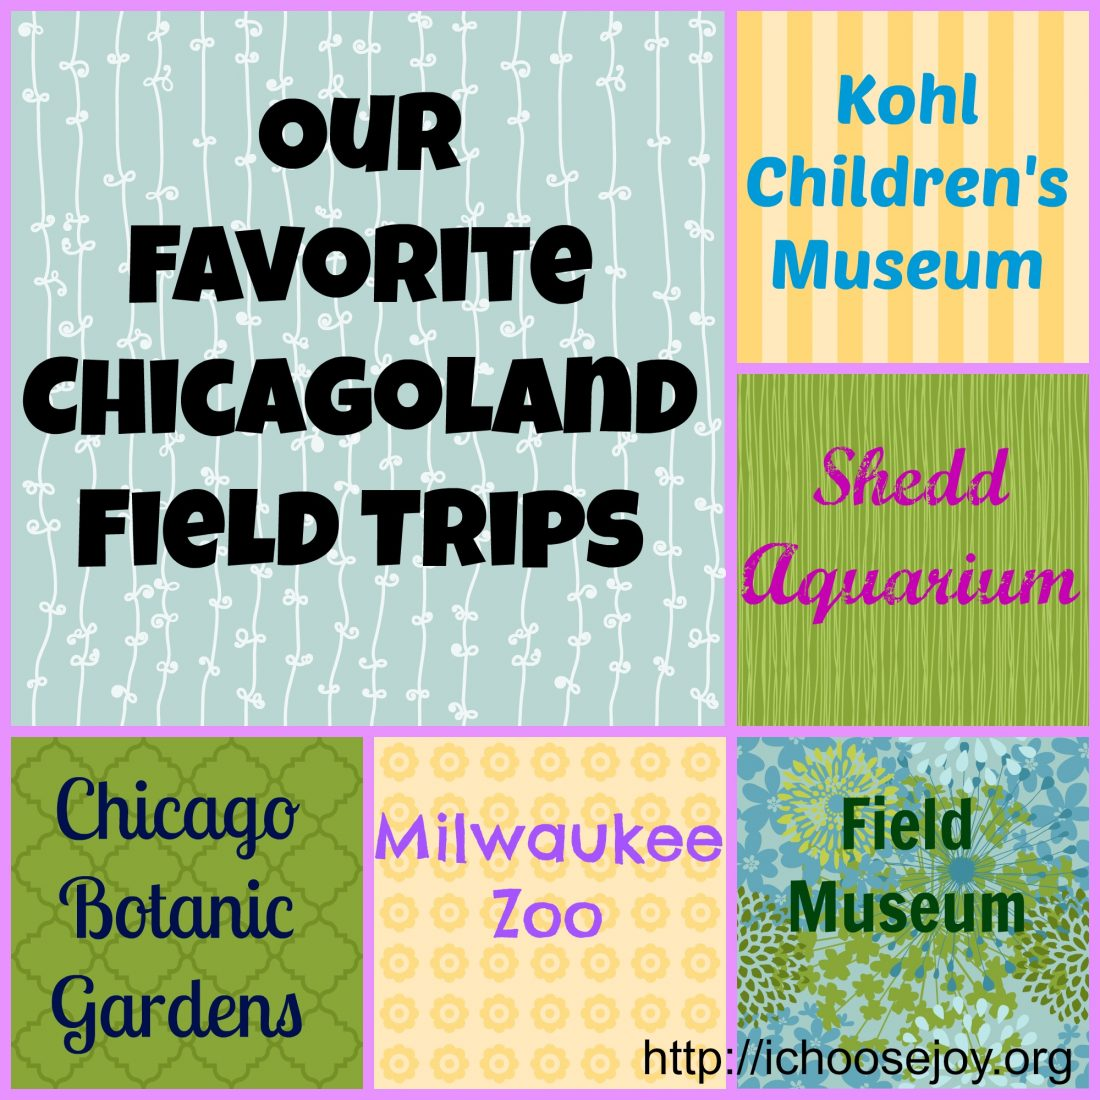 Our Favorite Chicagoland Field Trips